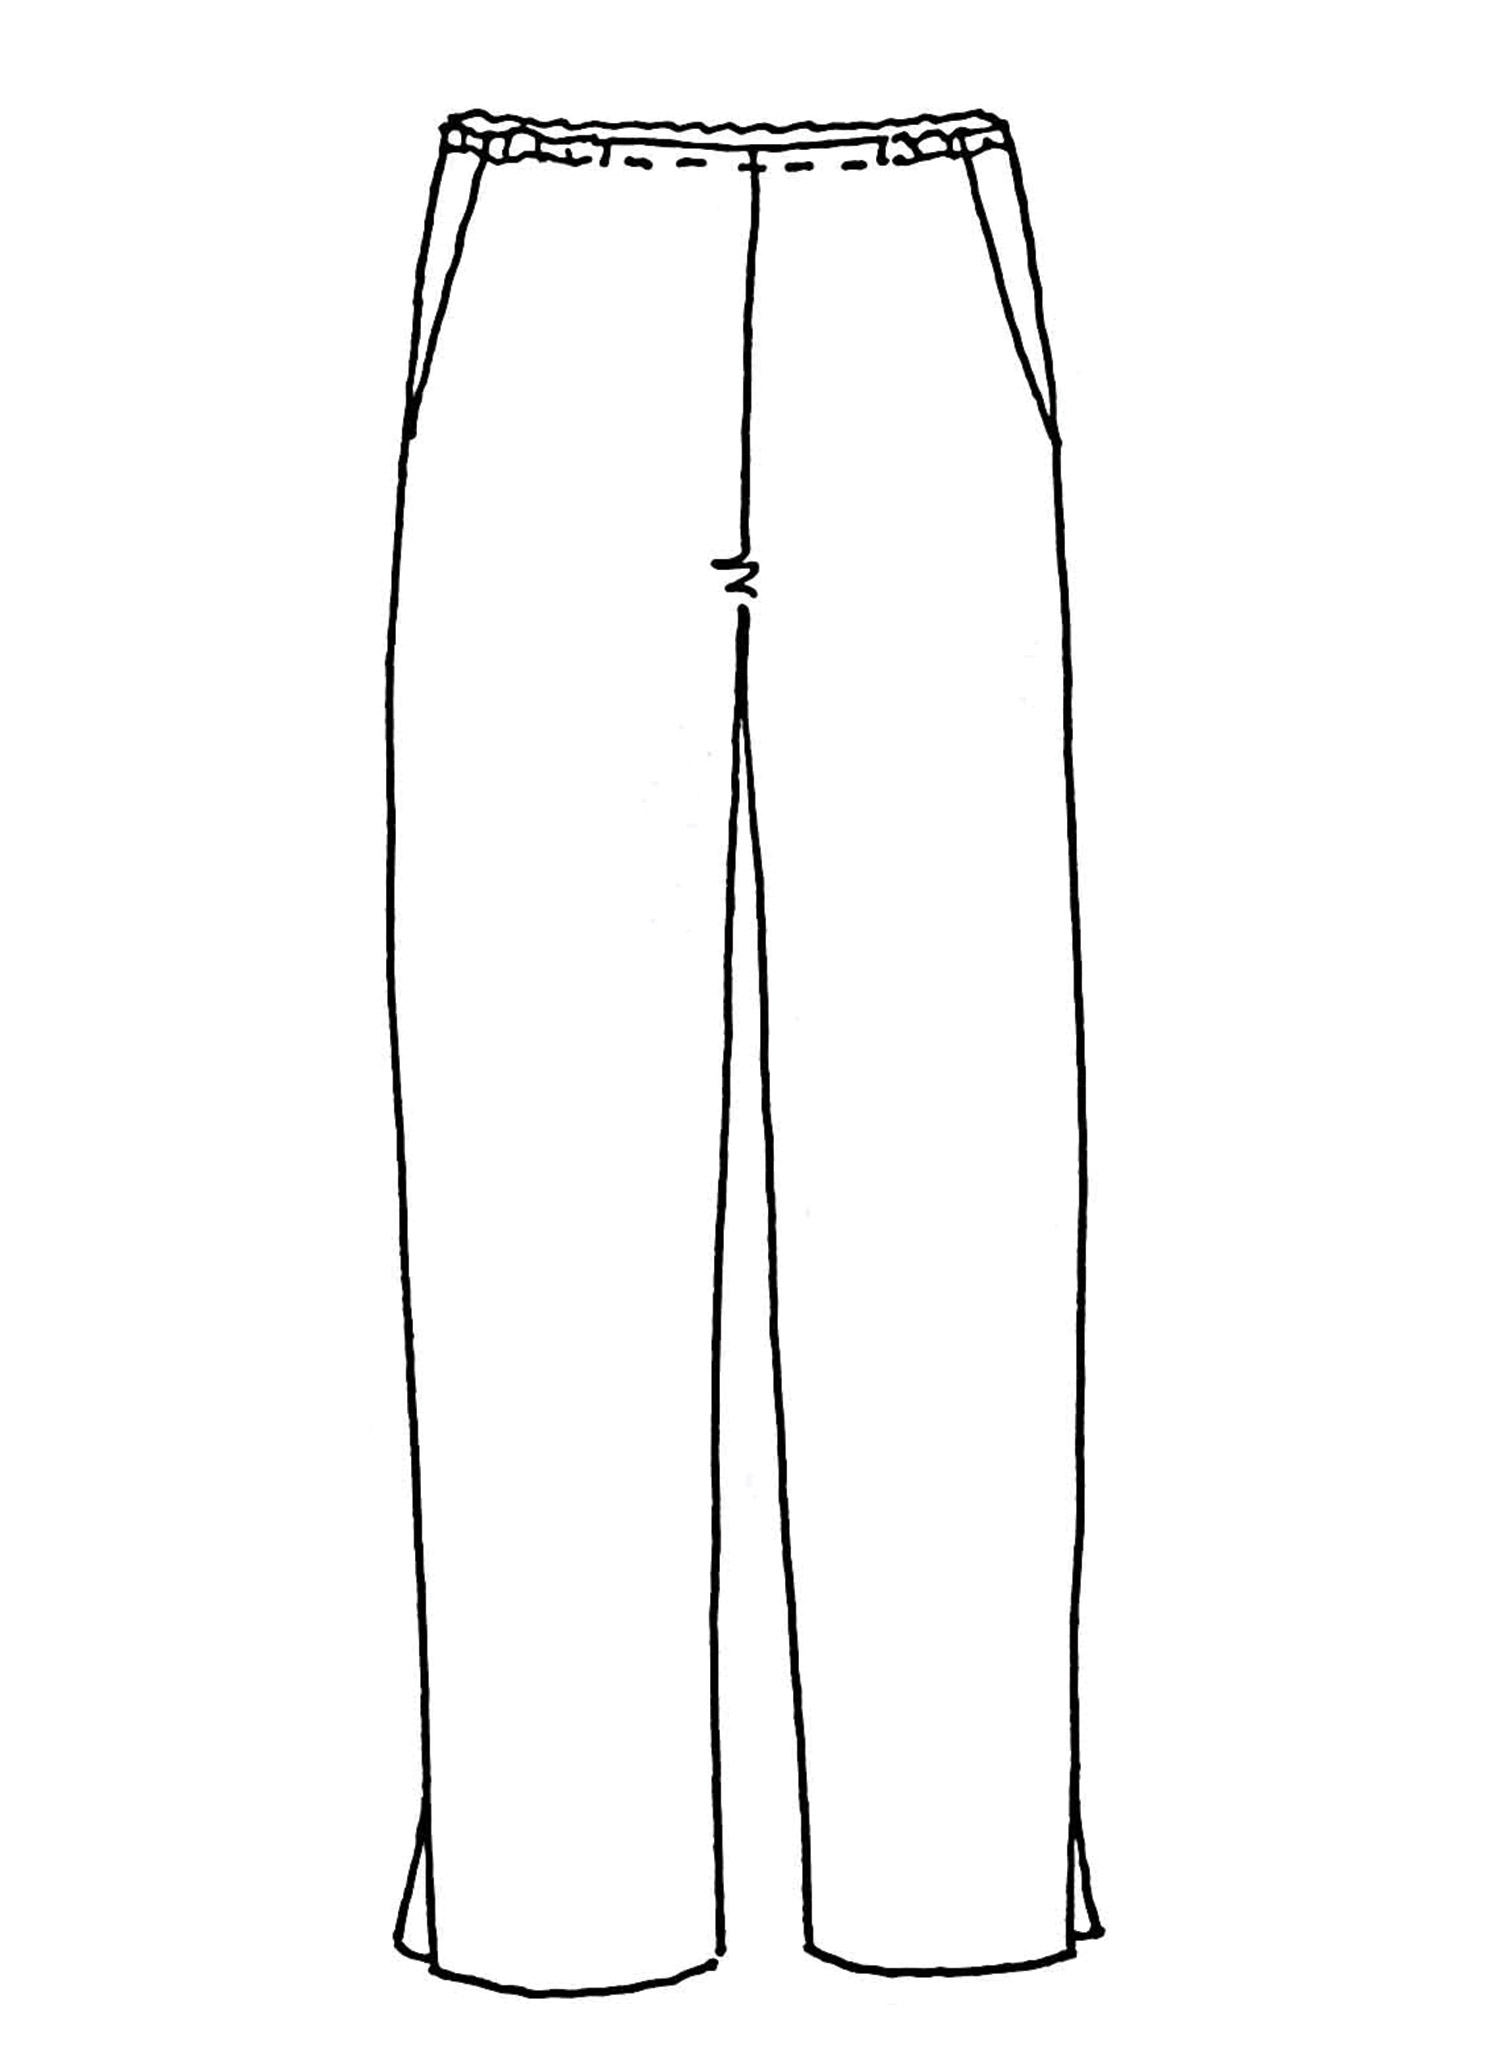 Pocketed Social Pant sketch image